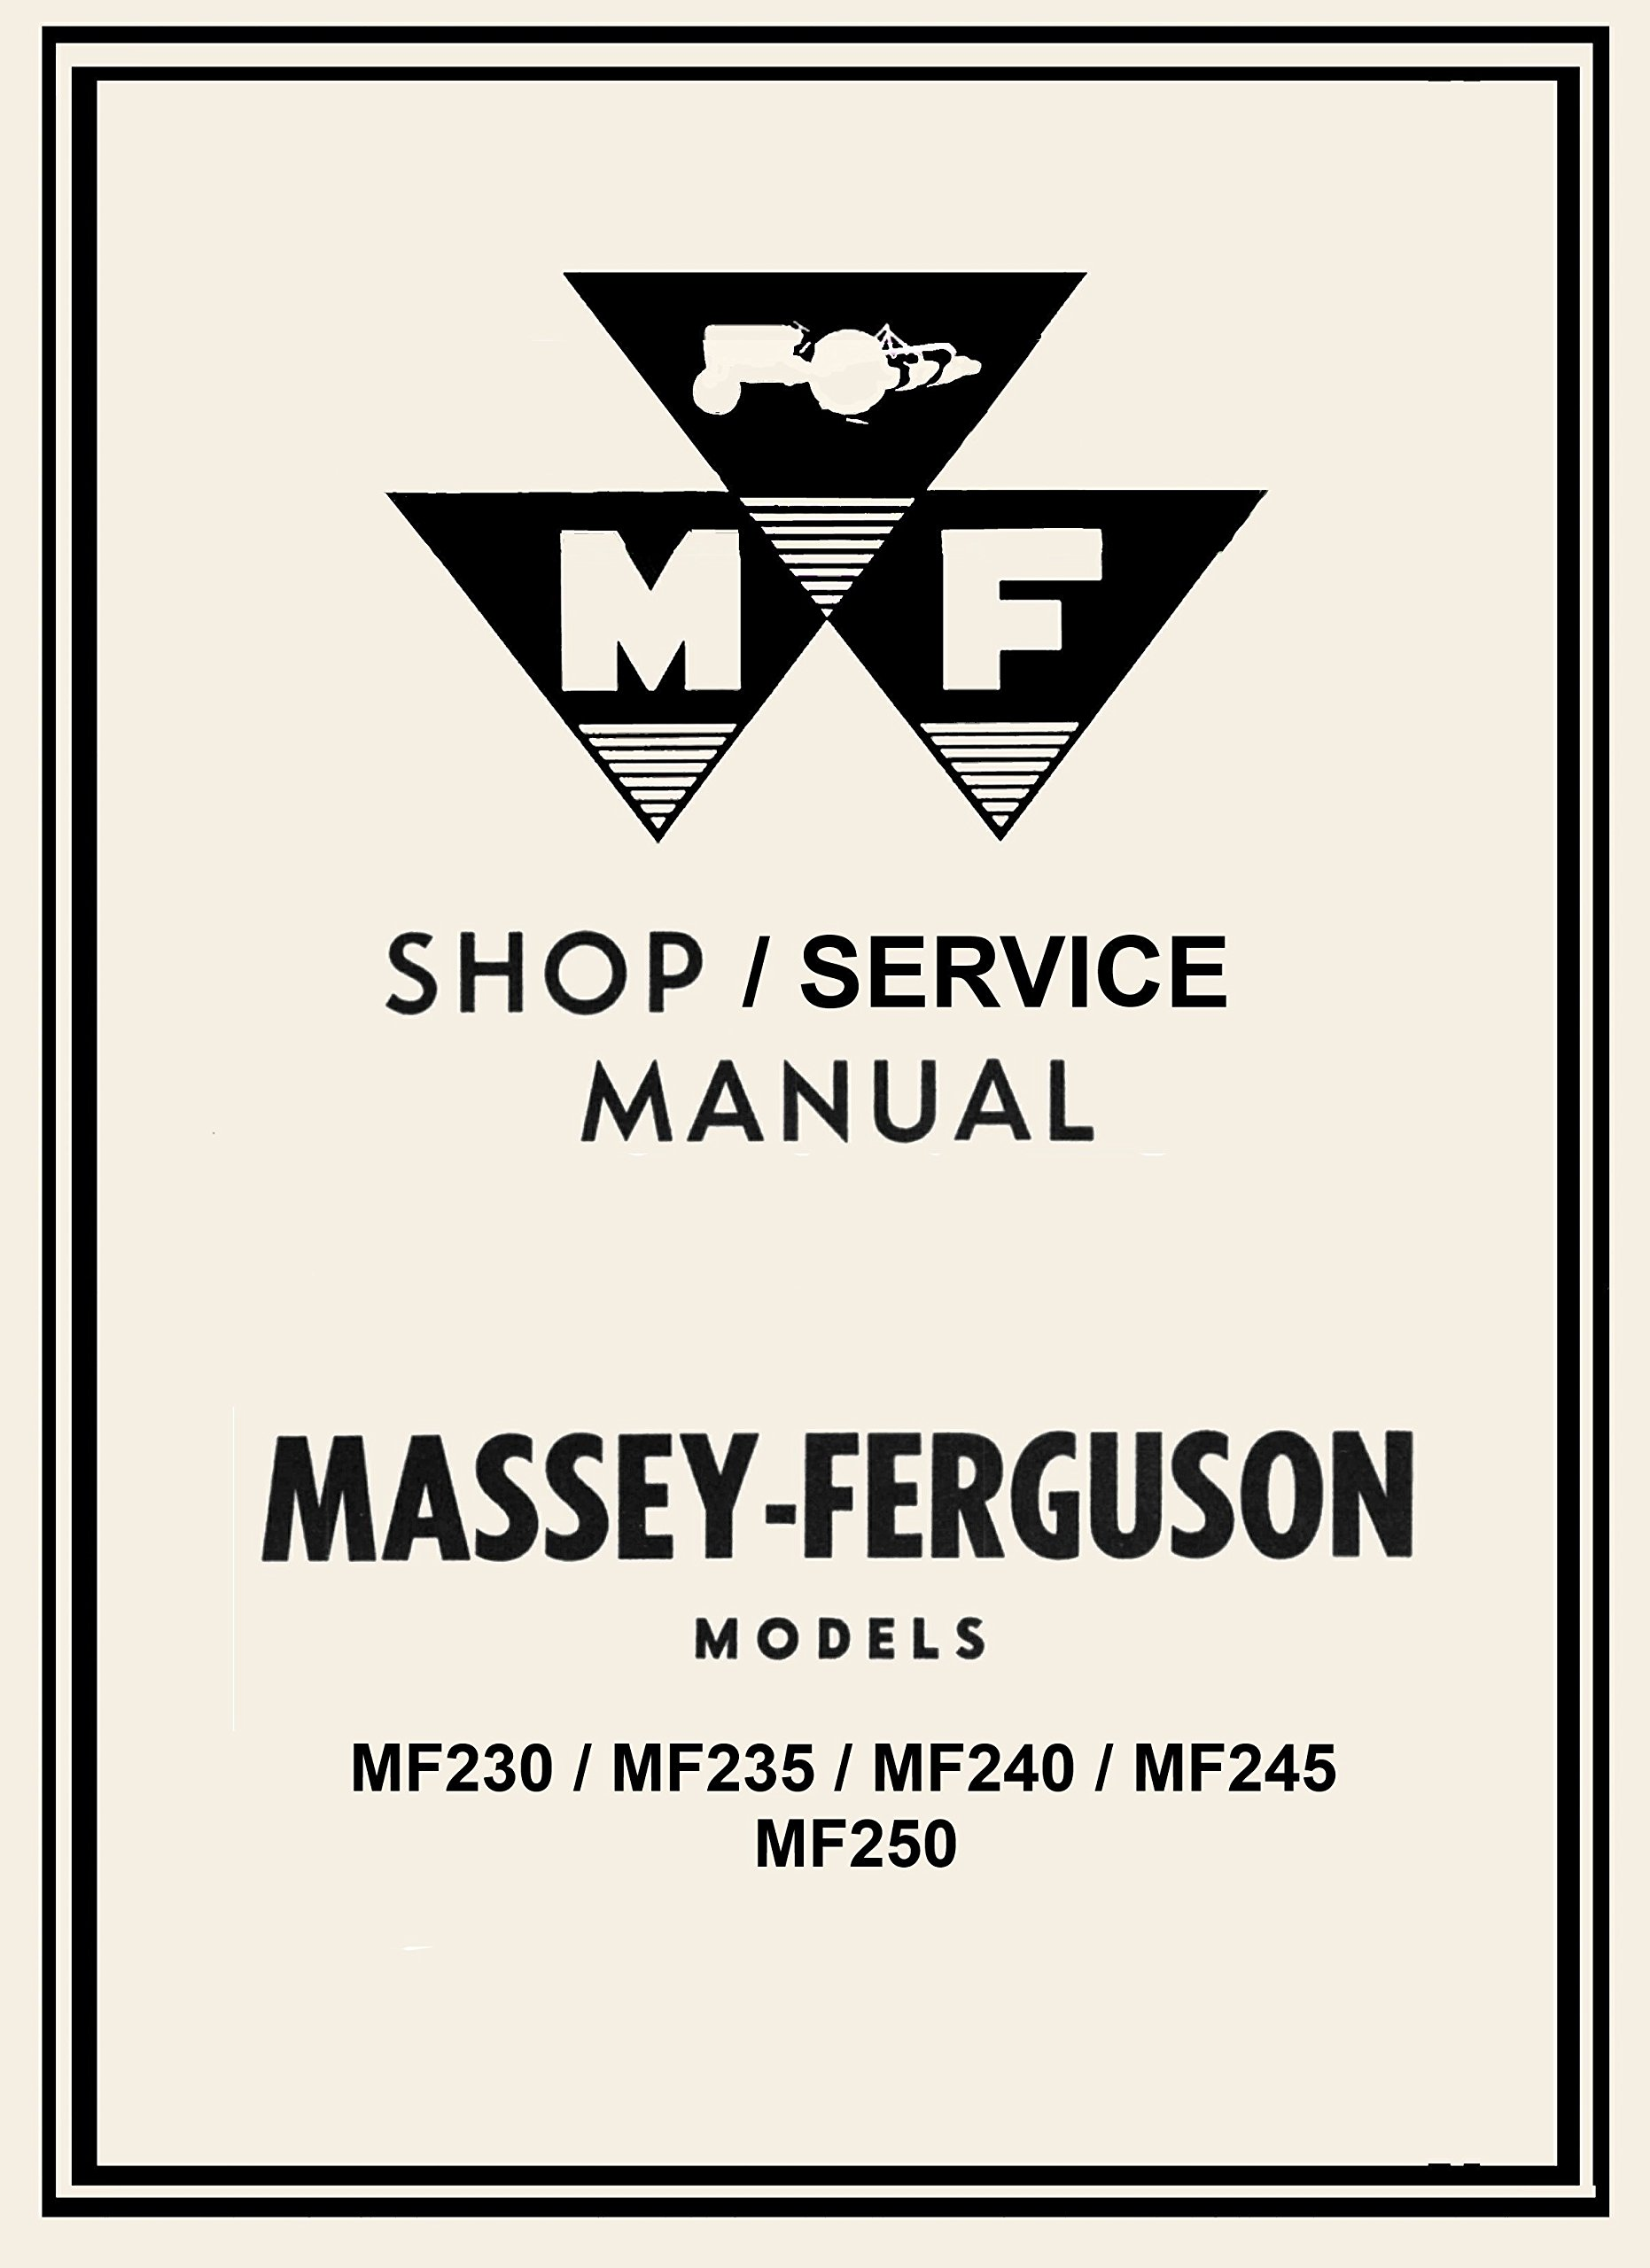 Massey Ferguson Mf230/ Mf235 /Mf240 / Mf245 / Mf250 Shop/service Manual -  Coil Binding: Massey Ferguson: 0763616420043: Amazon.com: Books